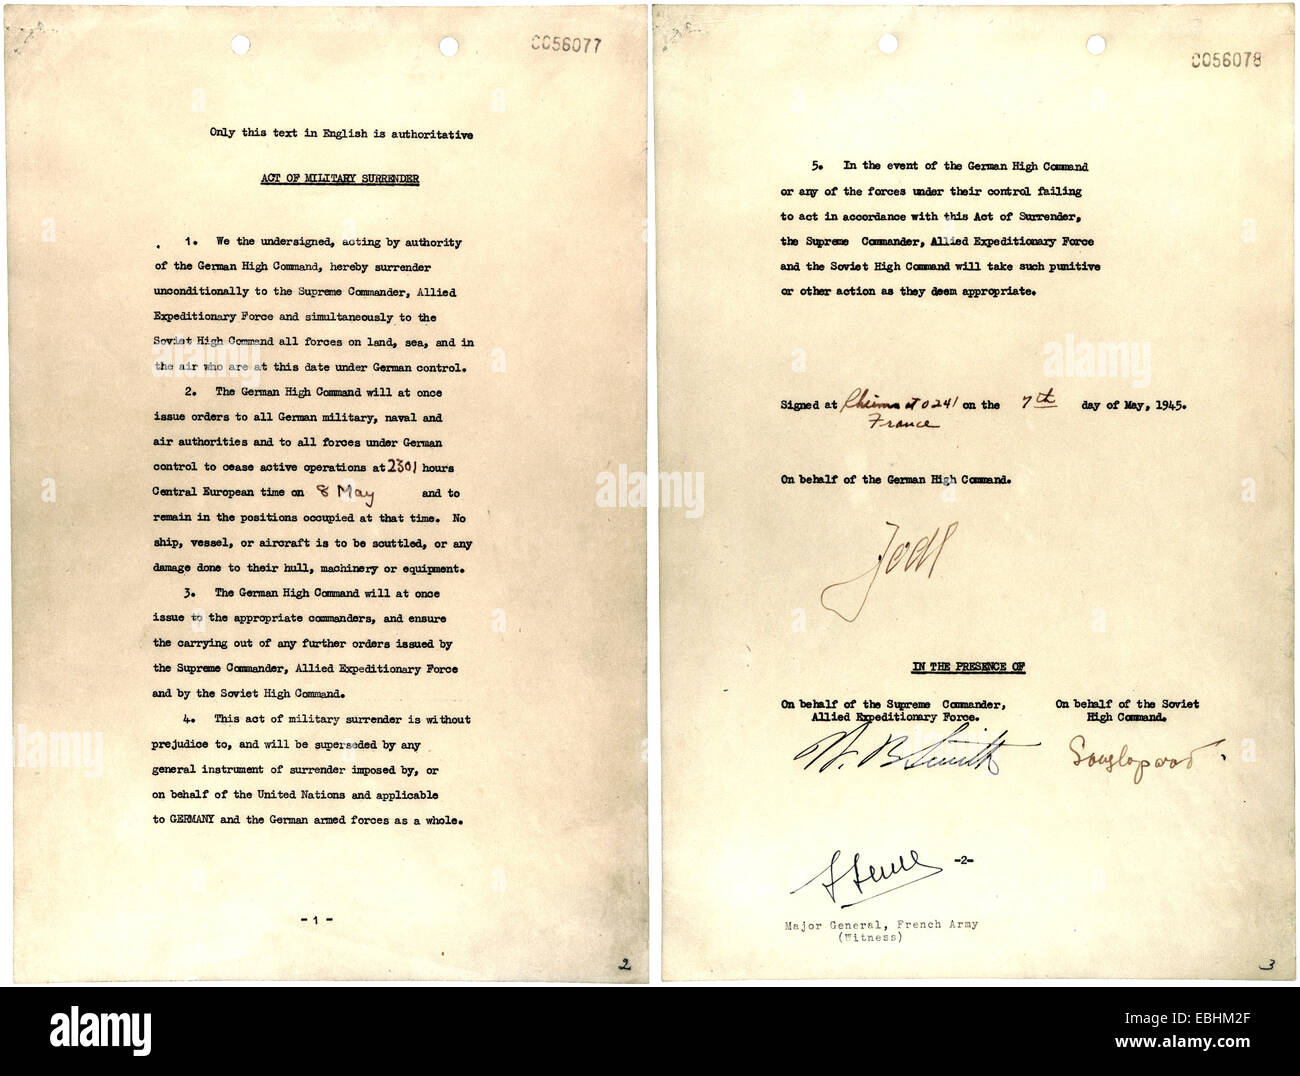 GERMAN SURRENDER DOCUMENT signed by Jodl at SHAEF HQ in Reims 7 May 1945 - Stock Image